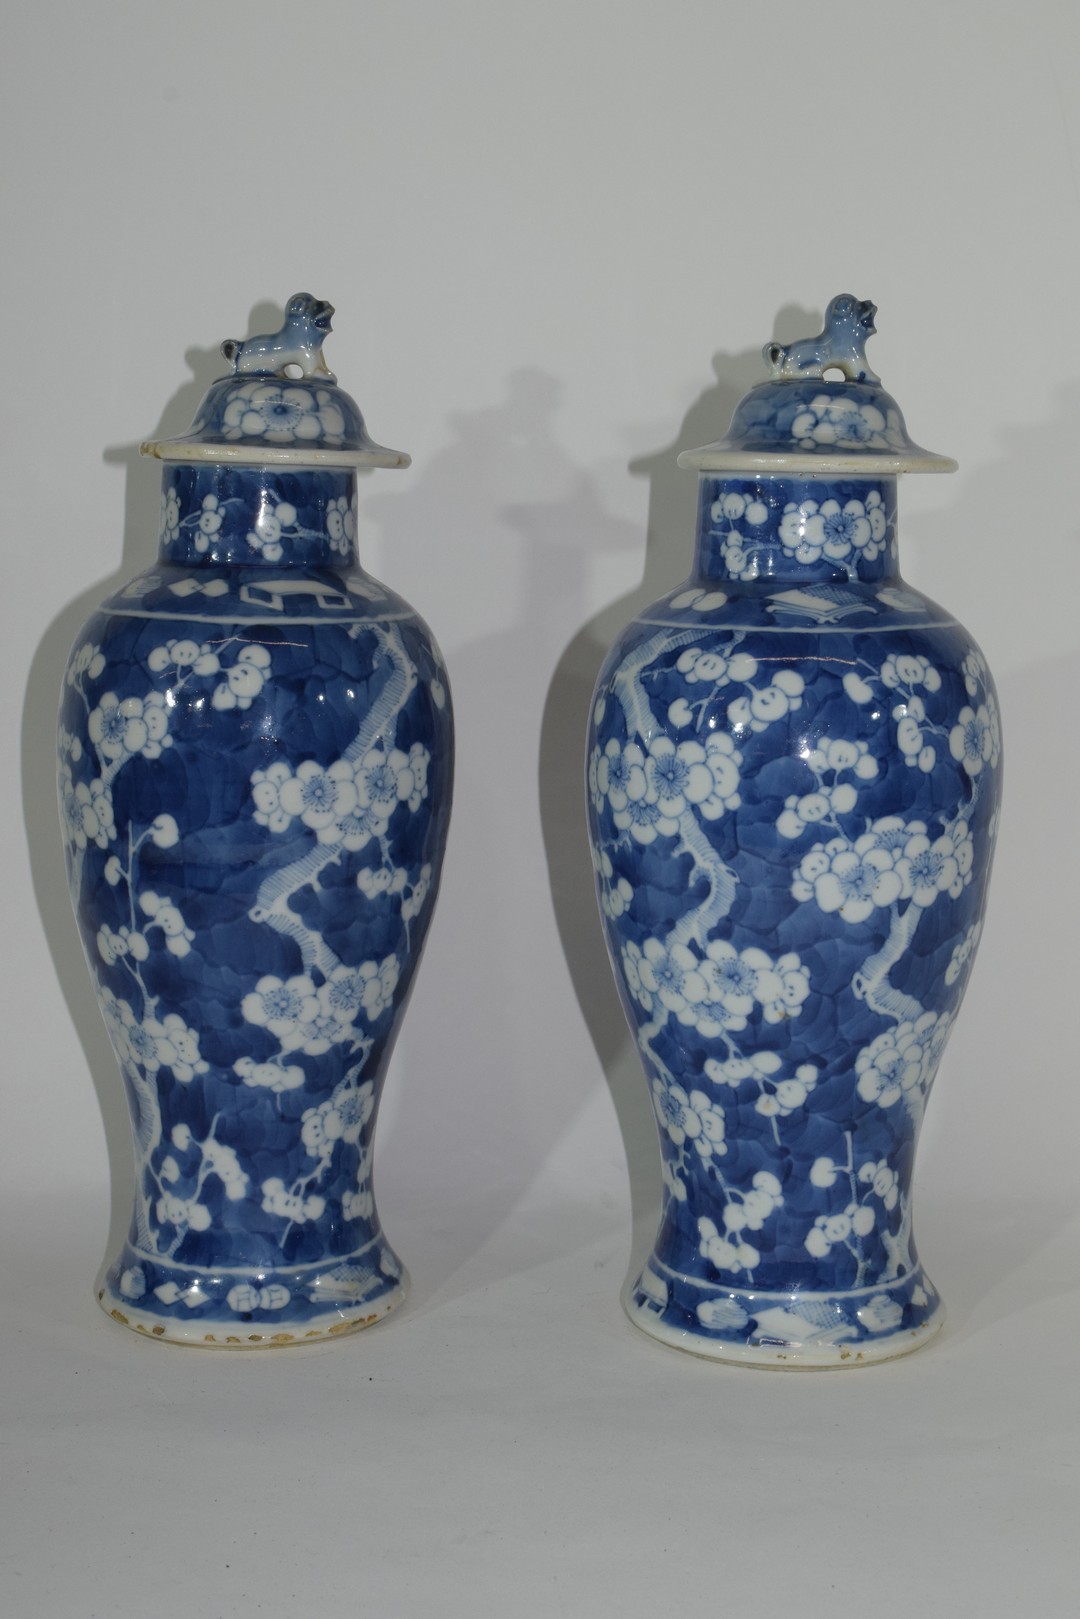 Pair of 19th century Chinese porcelain vases and covers - Image 3 of 9